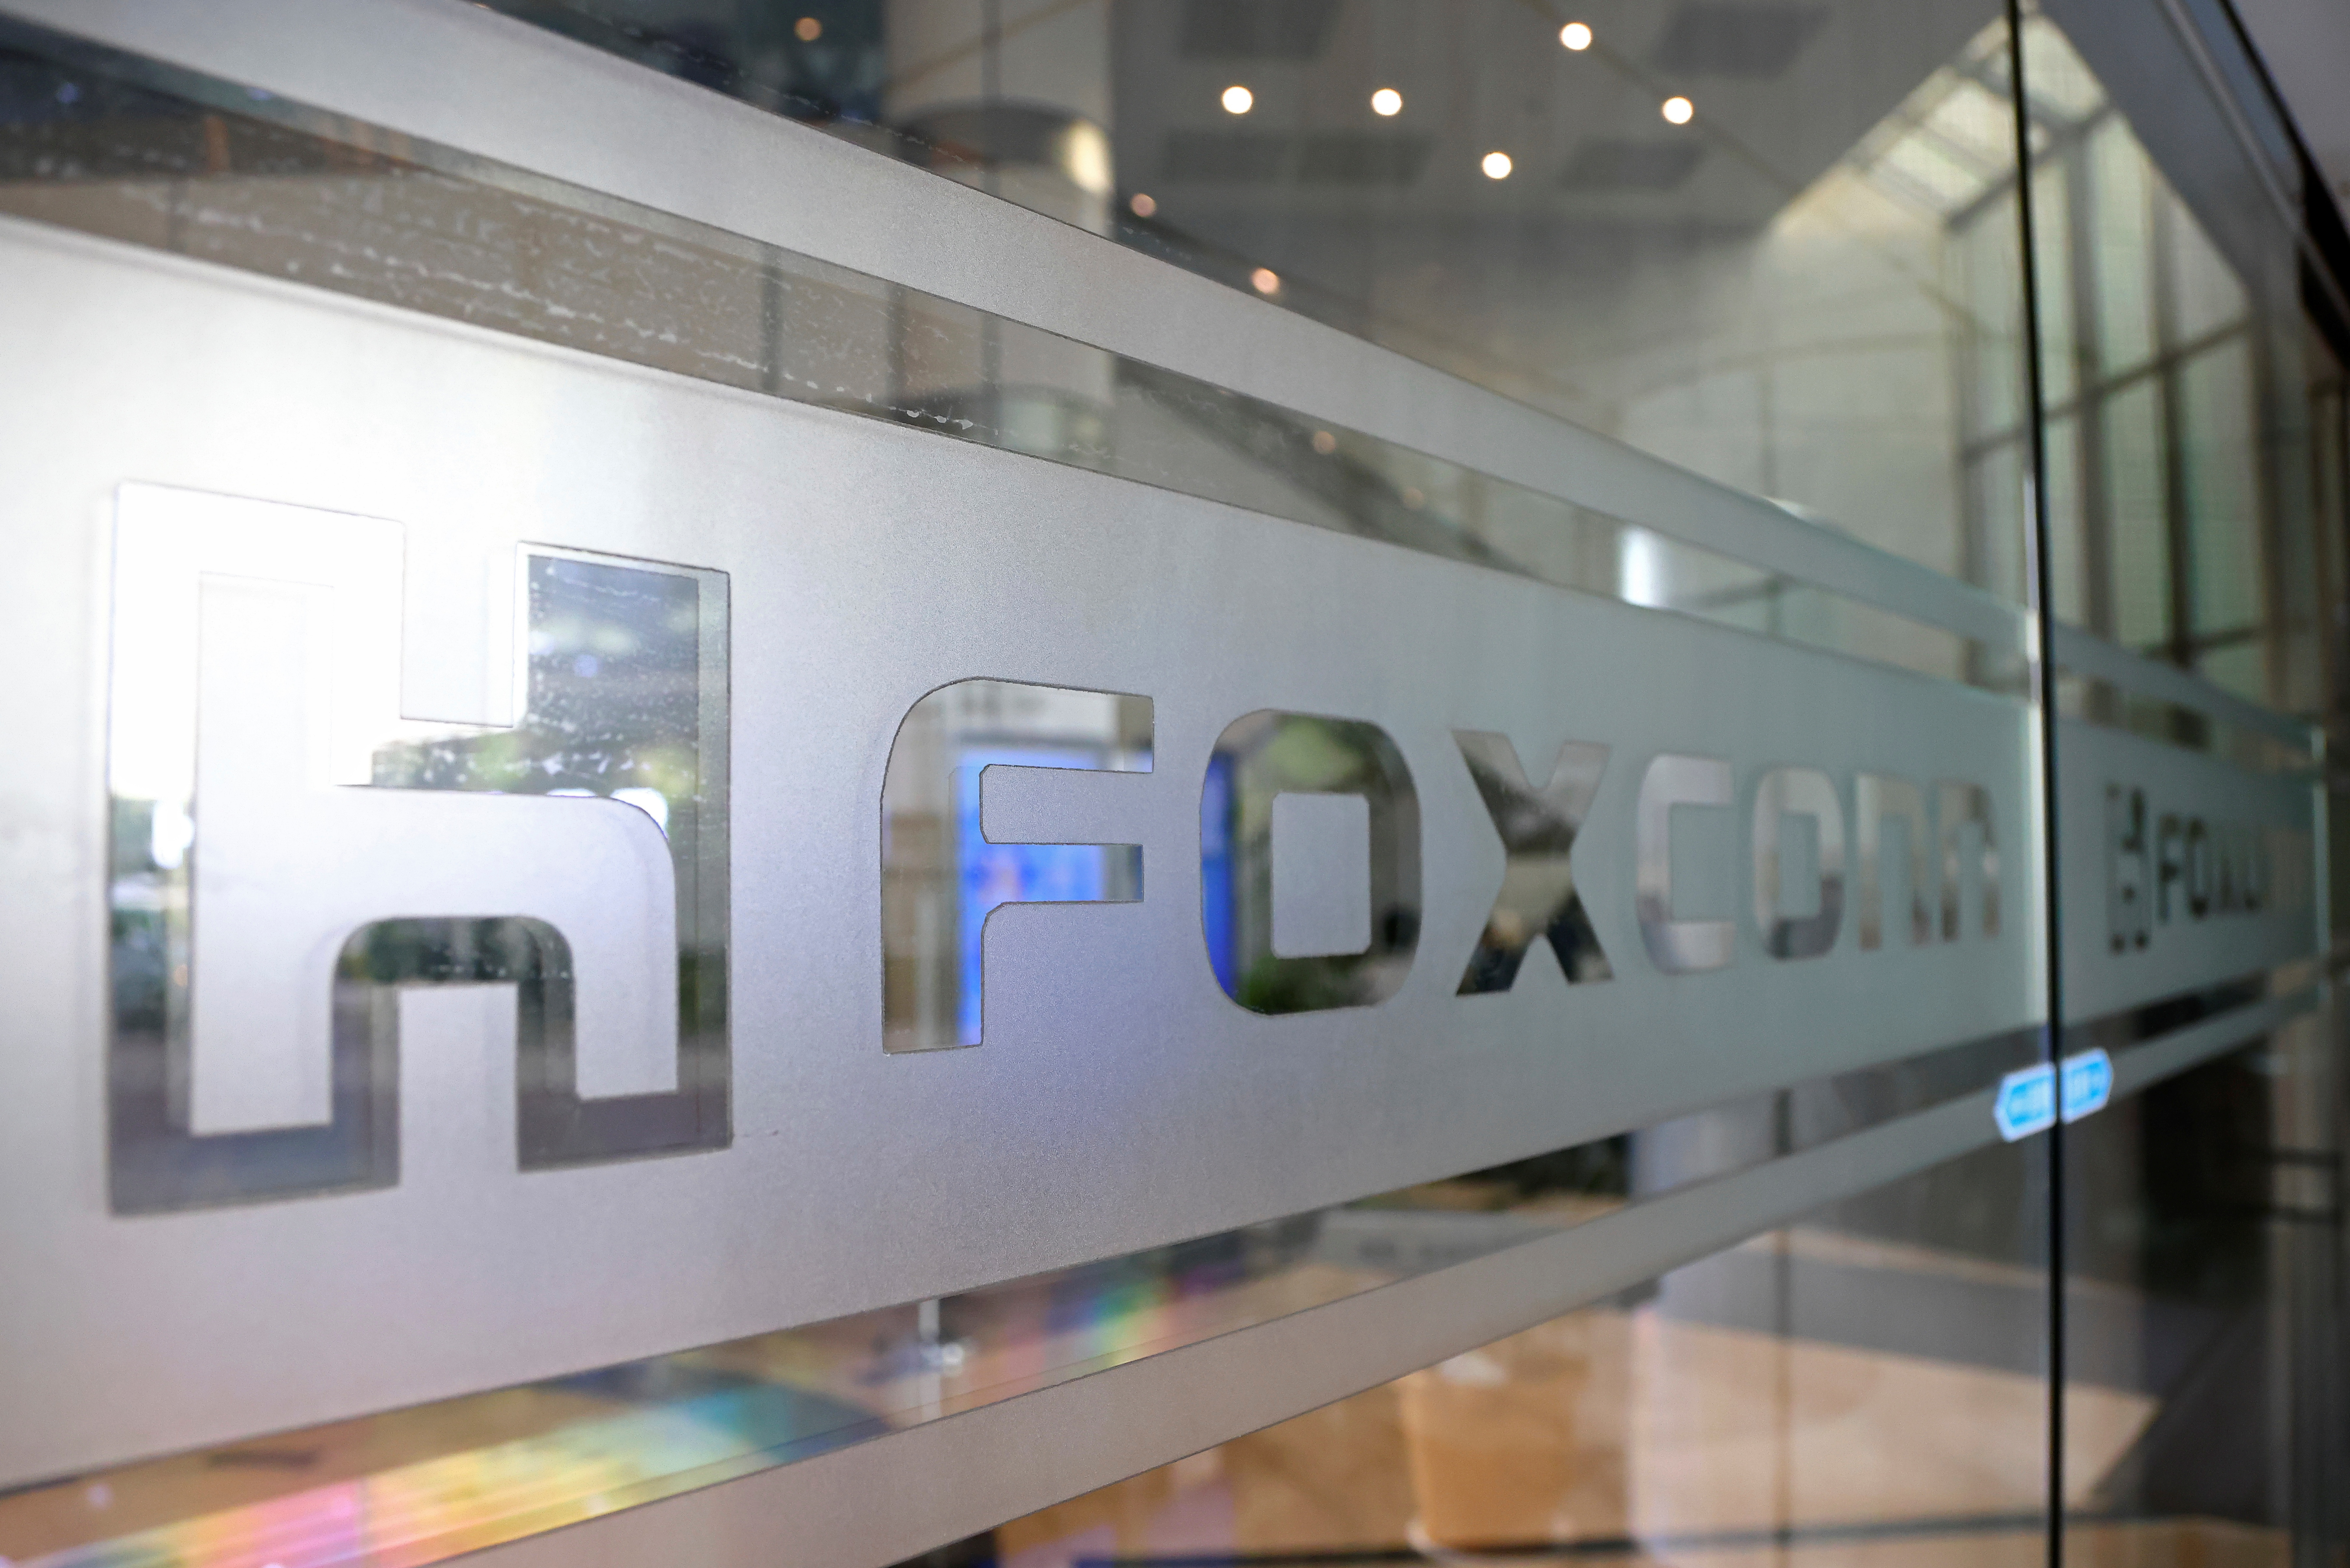 A sign of Foxconn is seen at a glass door inside its office building in Taipei, Taiwan November 12, 2020. REUTERS/Ann Wang